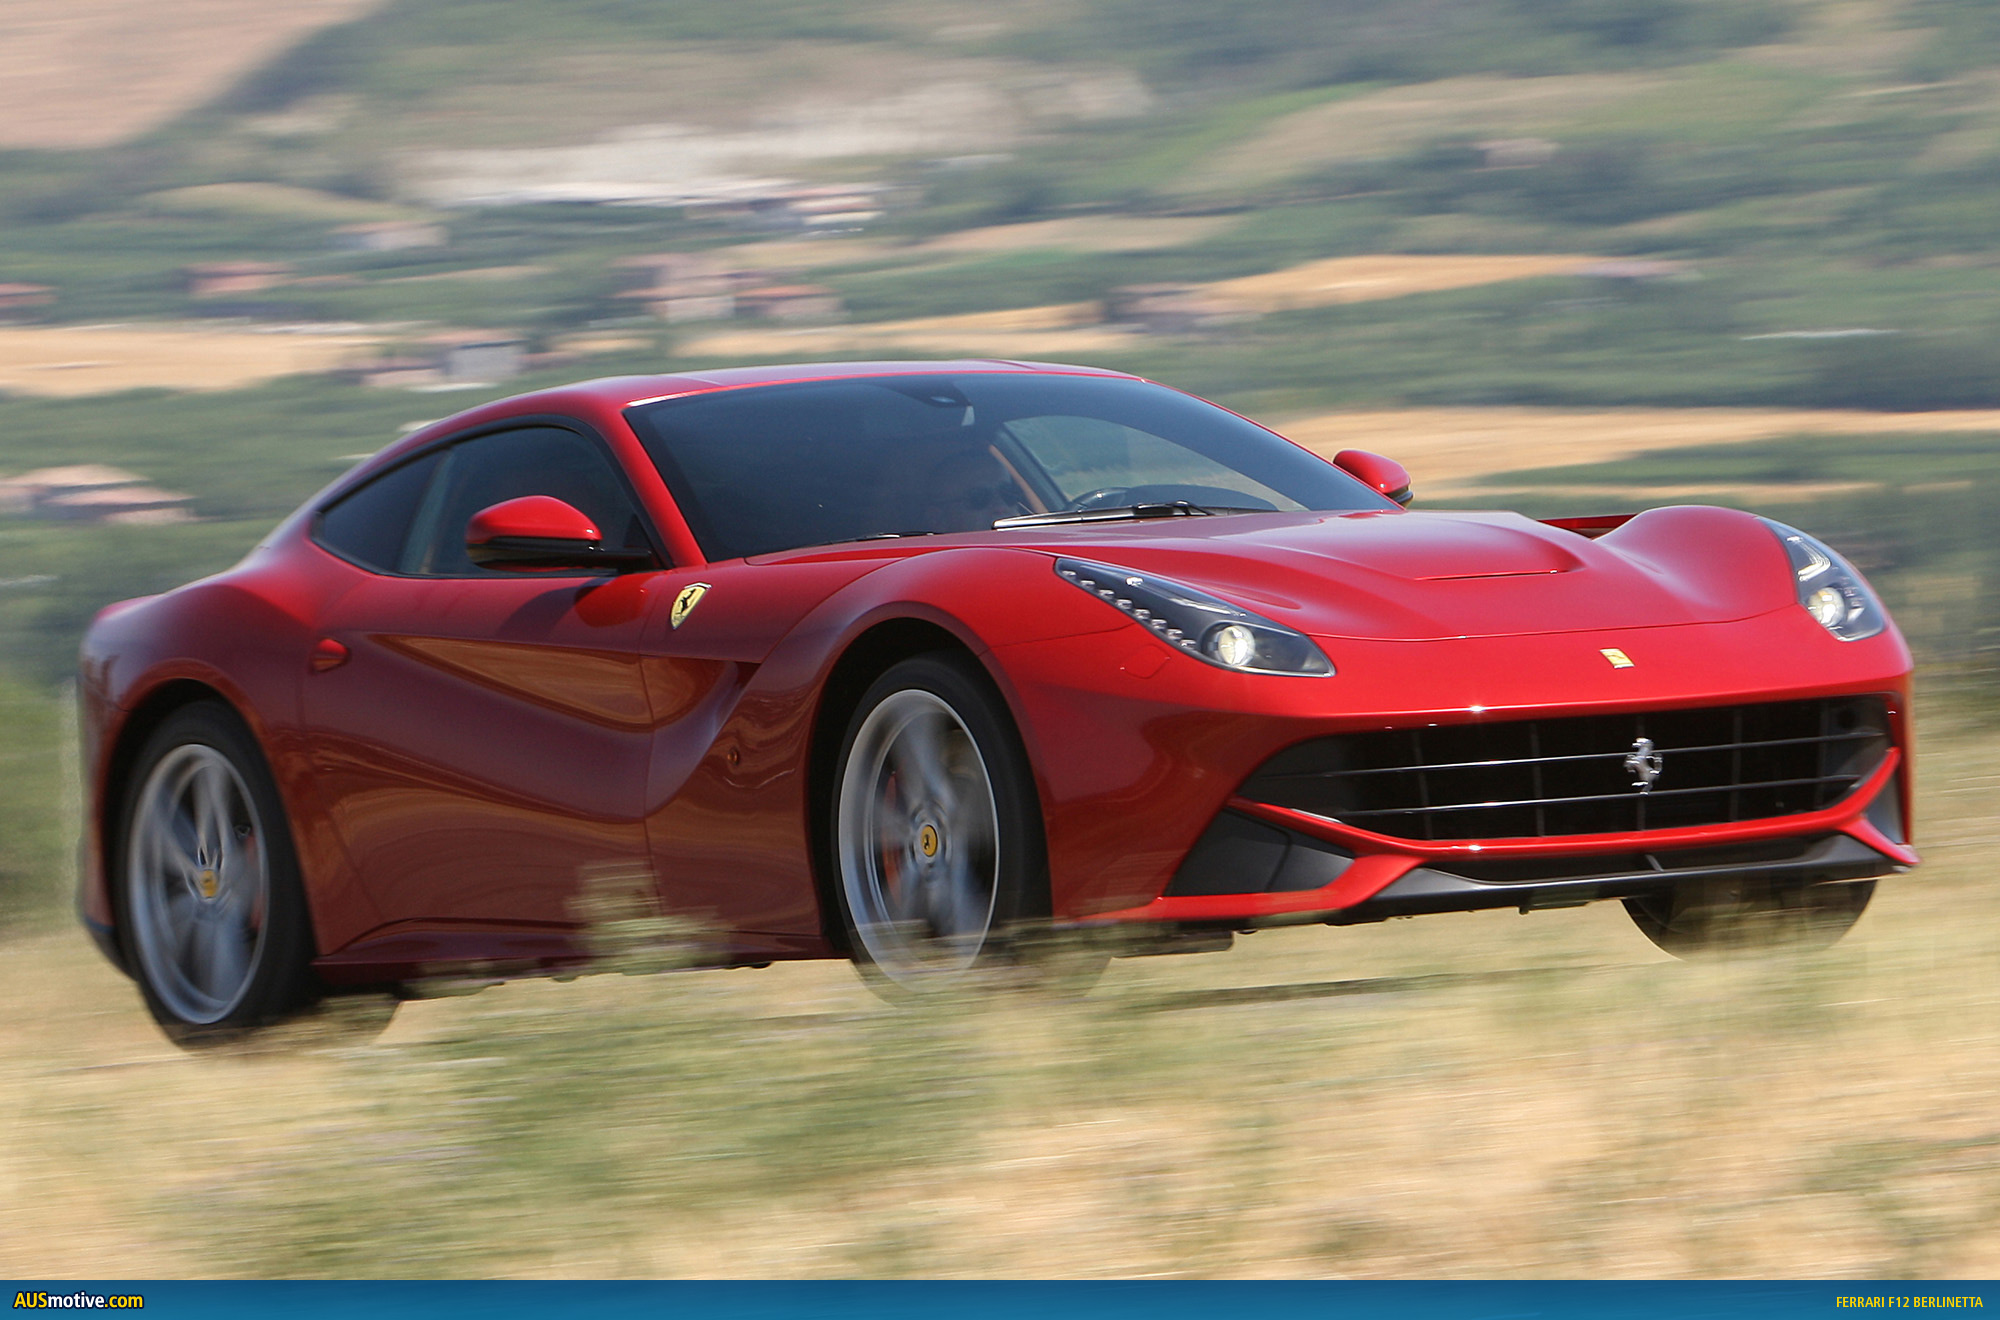 2012 Ferrari F12 Berlinetta Price Ferrari F12 Berlinetta Has